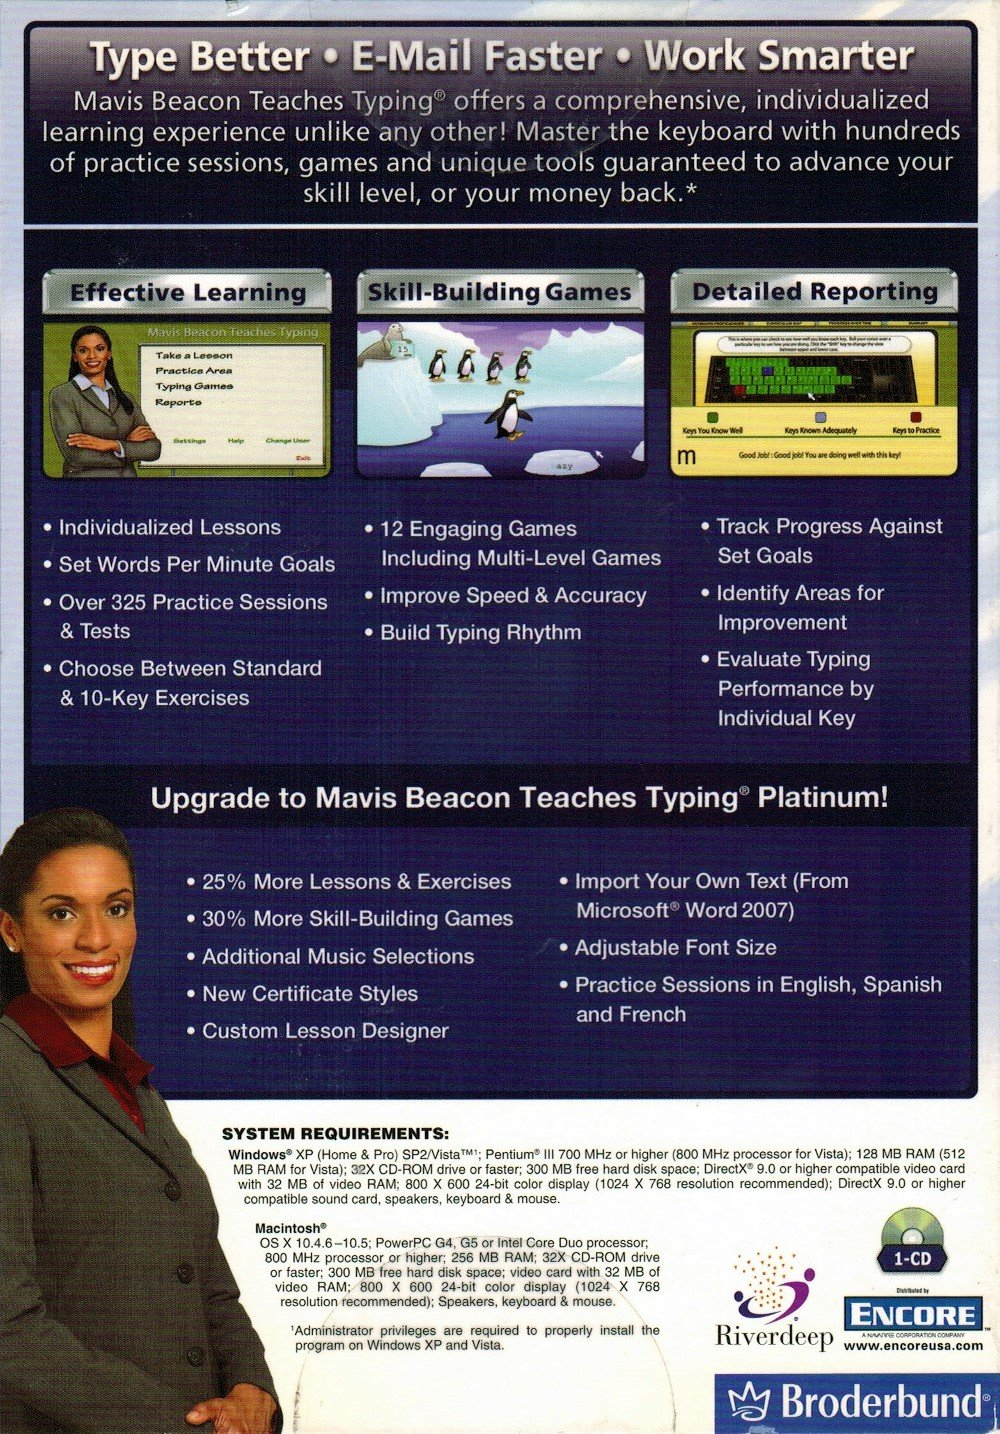 Mavis Beacon Teaches Typing Deluxe 20 - Old Version by Encore (Image #3)